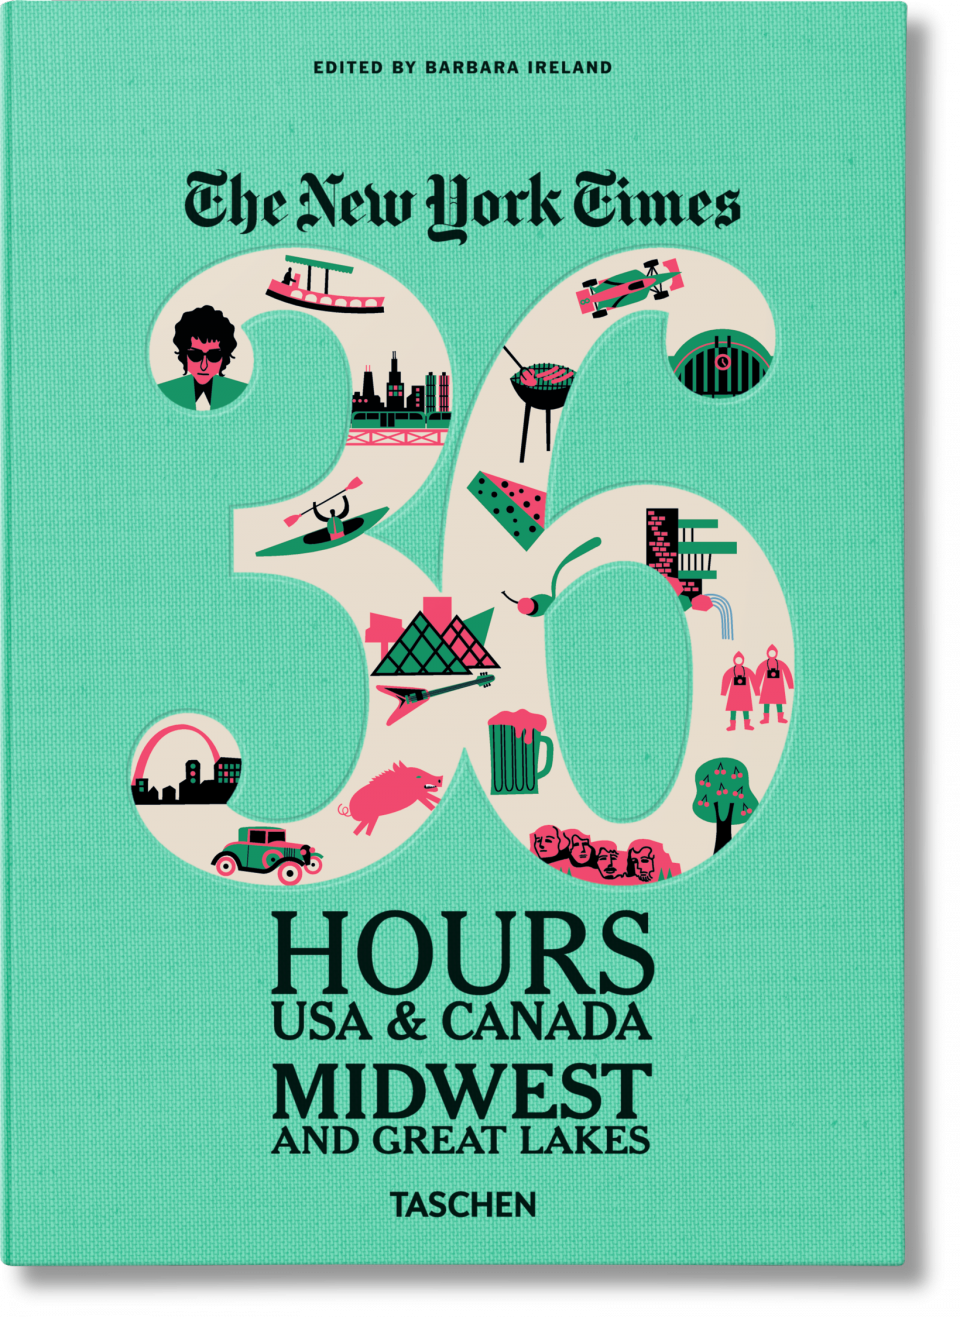 The NY Times. 36 Hours USA & Canada. Midwest - TASCHEN Books